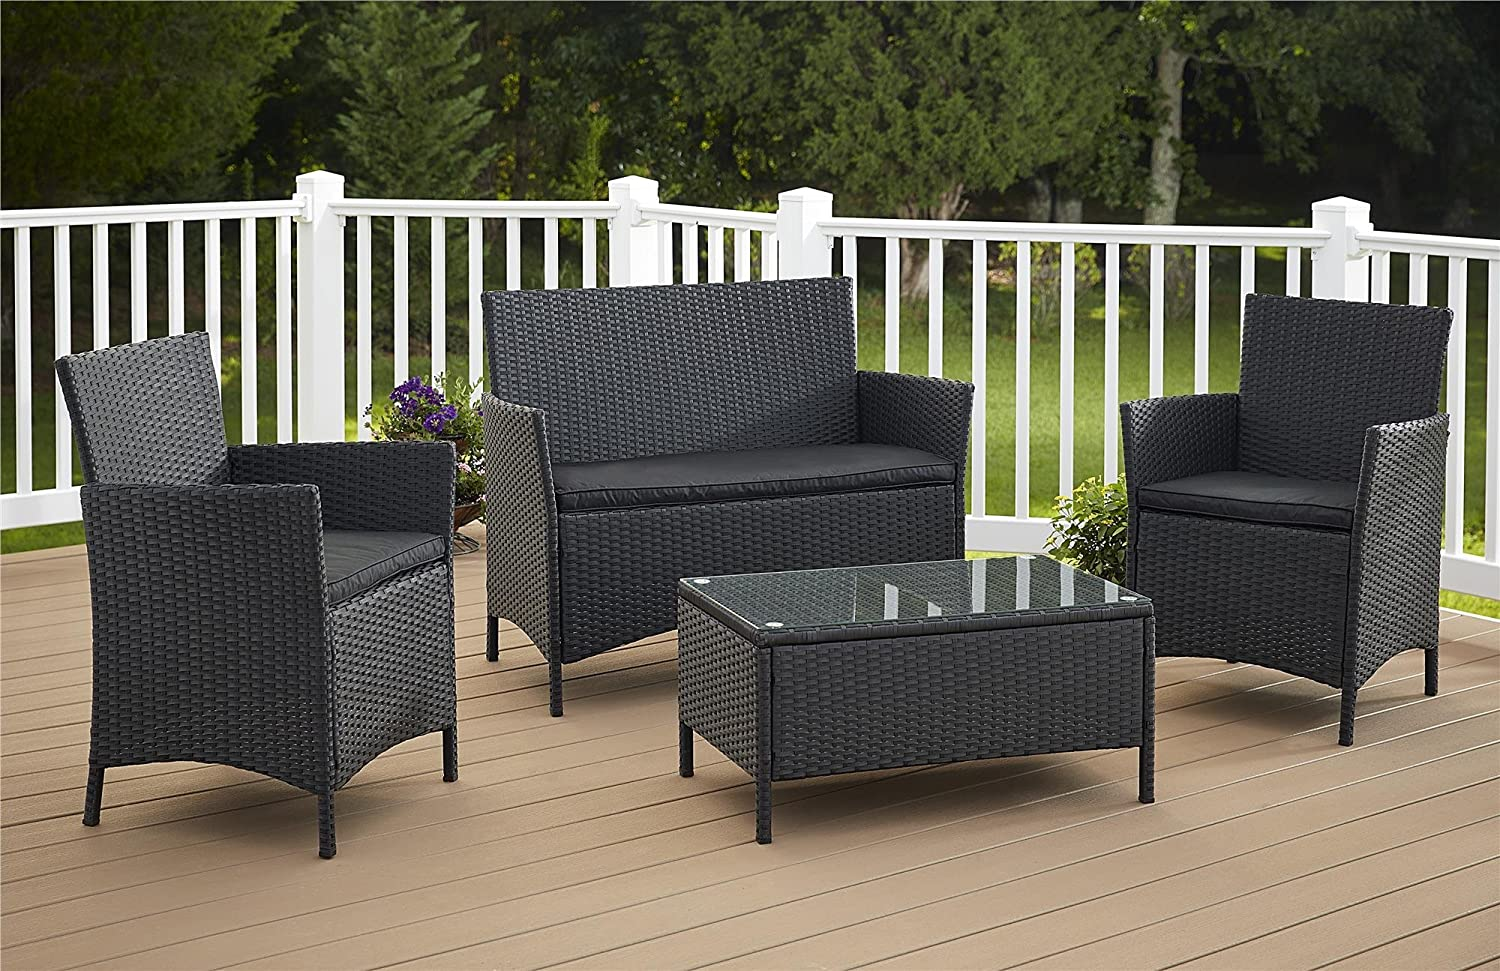 amazoncom cosco products 4 piece jamaica resin wicker conversation set garden outdoor - Garden Furniture 4 All